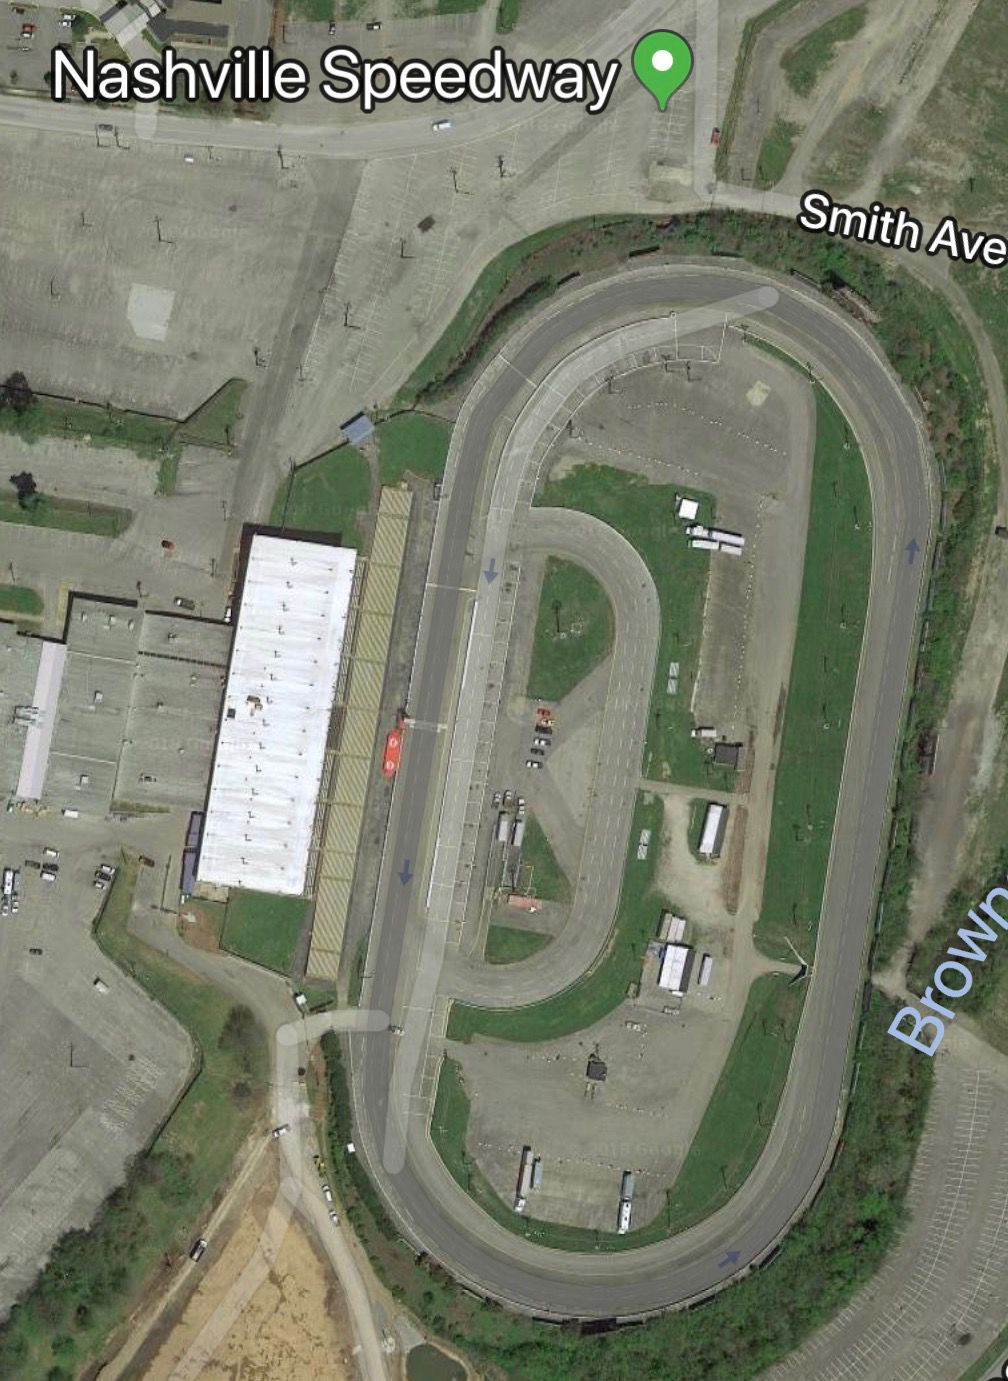 Speedway-google earth